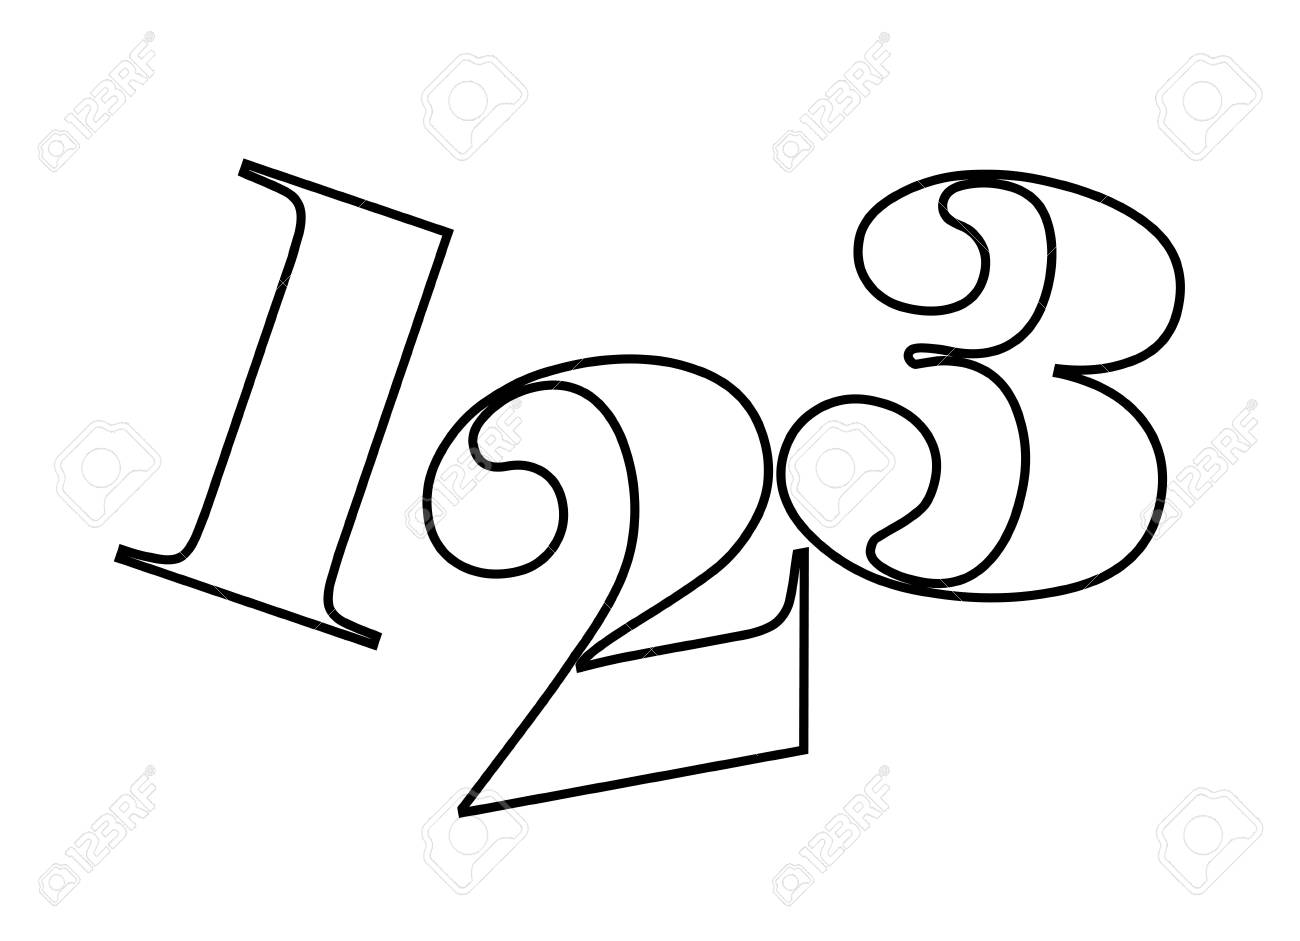 1,2,3 numbers drawing isolated icon design, vector illustration...